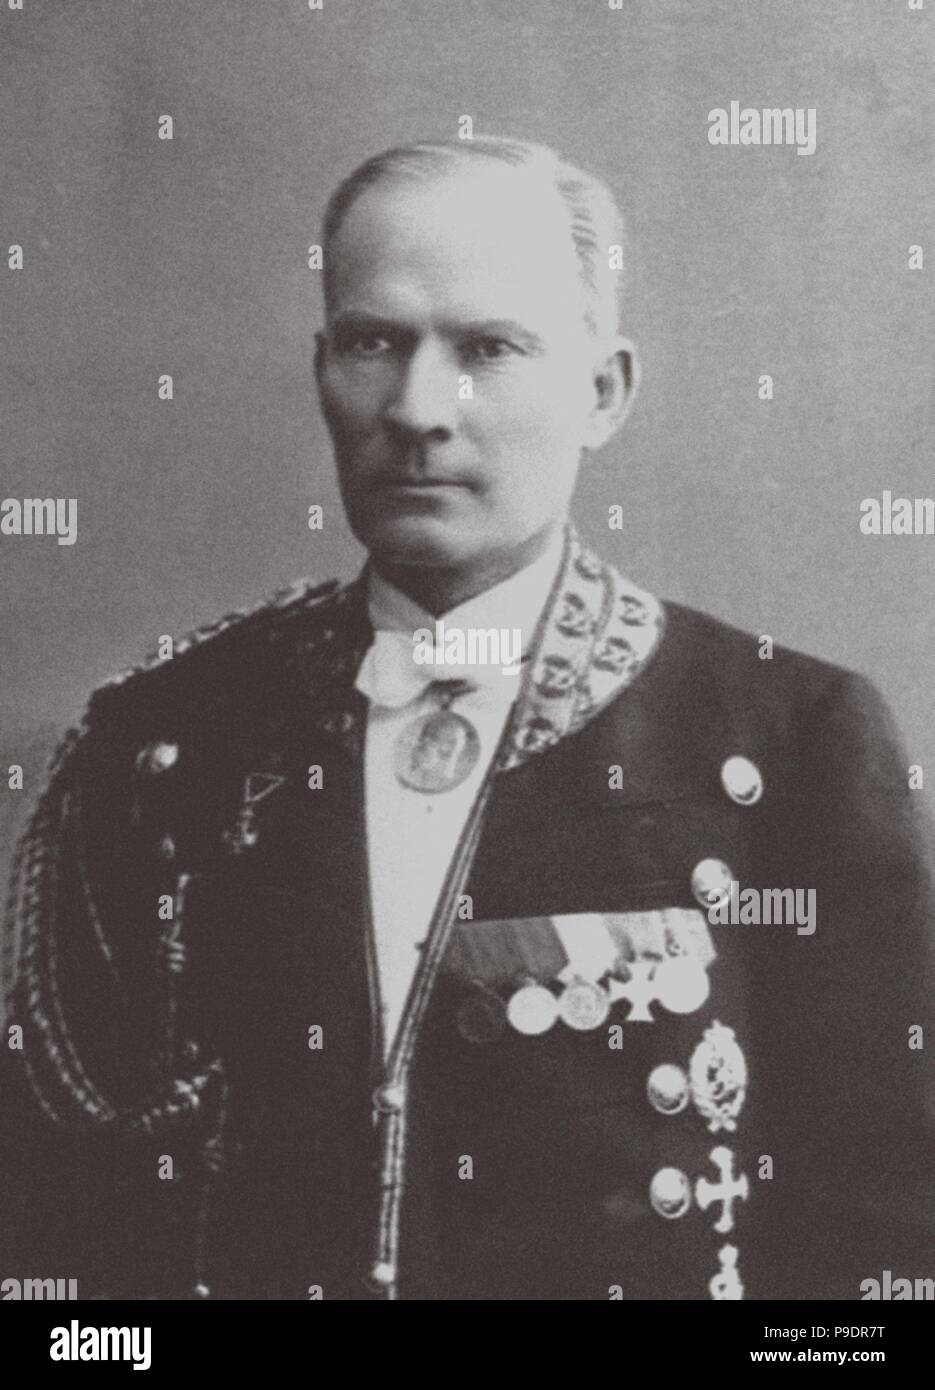 Alexei Trupp (1858 - 1918), footman of the Romanov Family. Museum: PRIVATE COLLECTION. - Stock Image